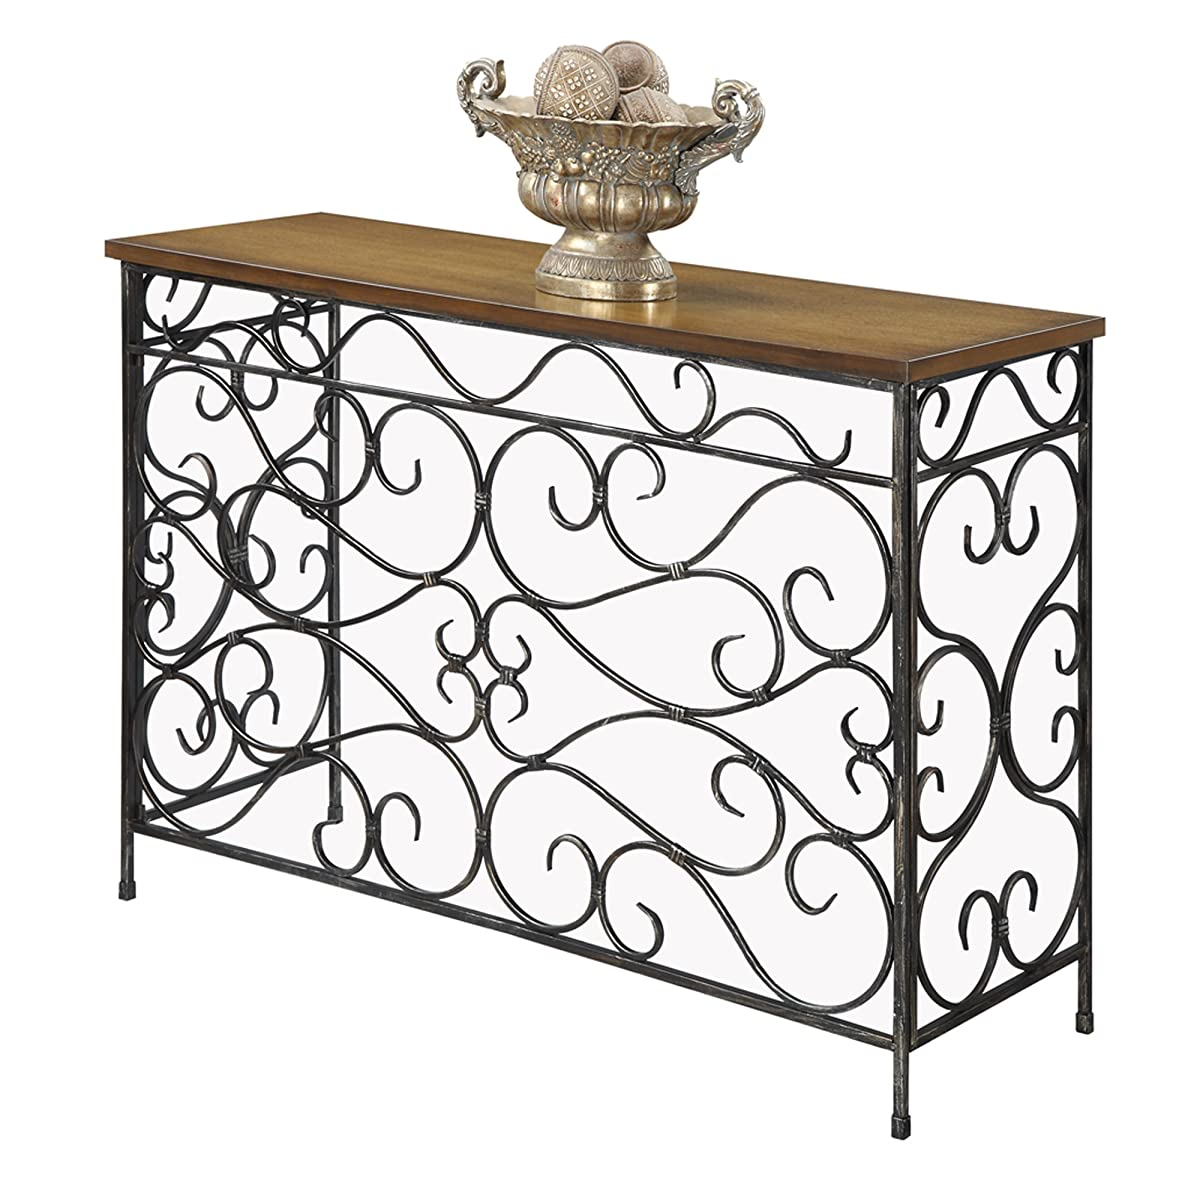 Convenience Concepts Wyoming Metal and Wood Console, Black Antiqued Finish